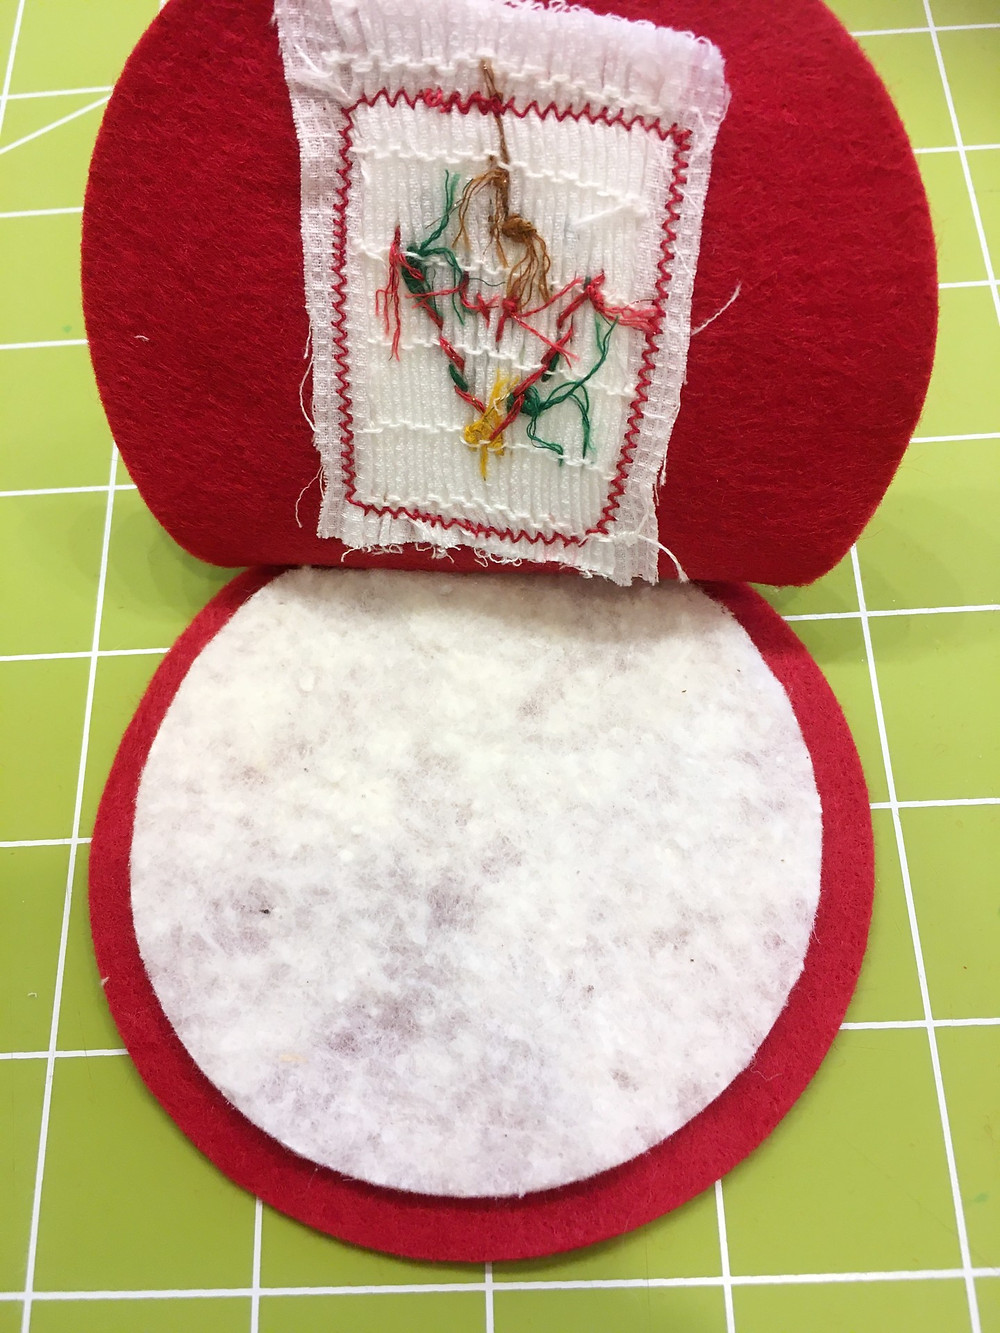 The ornament with the batting inserted.